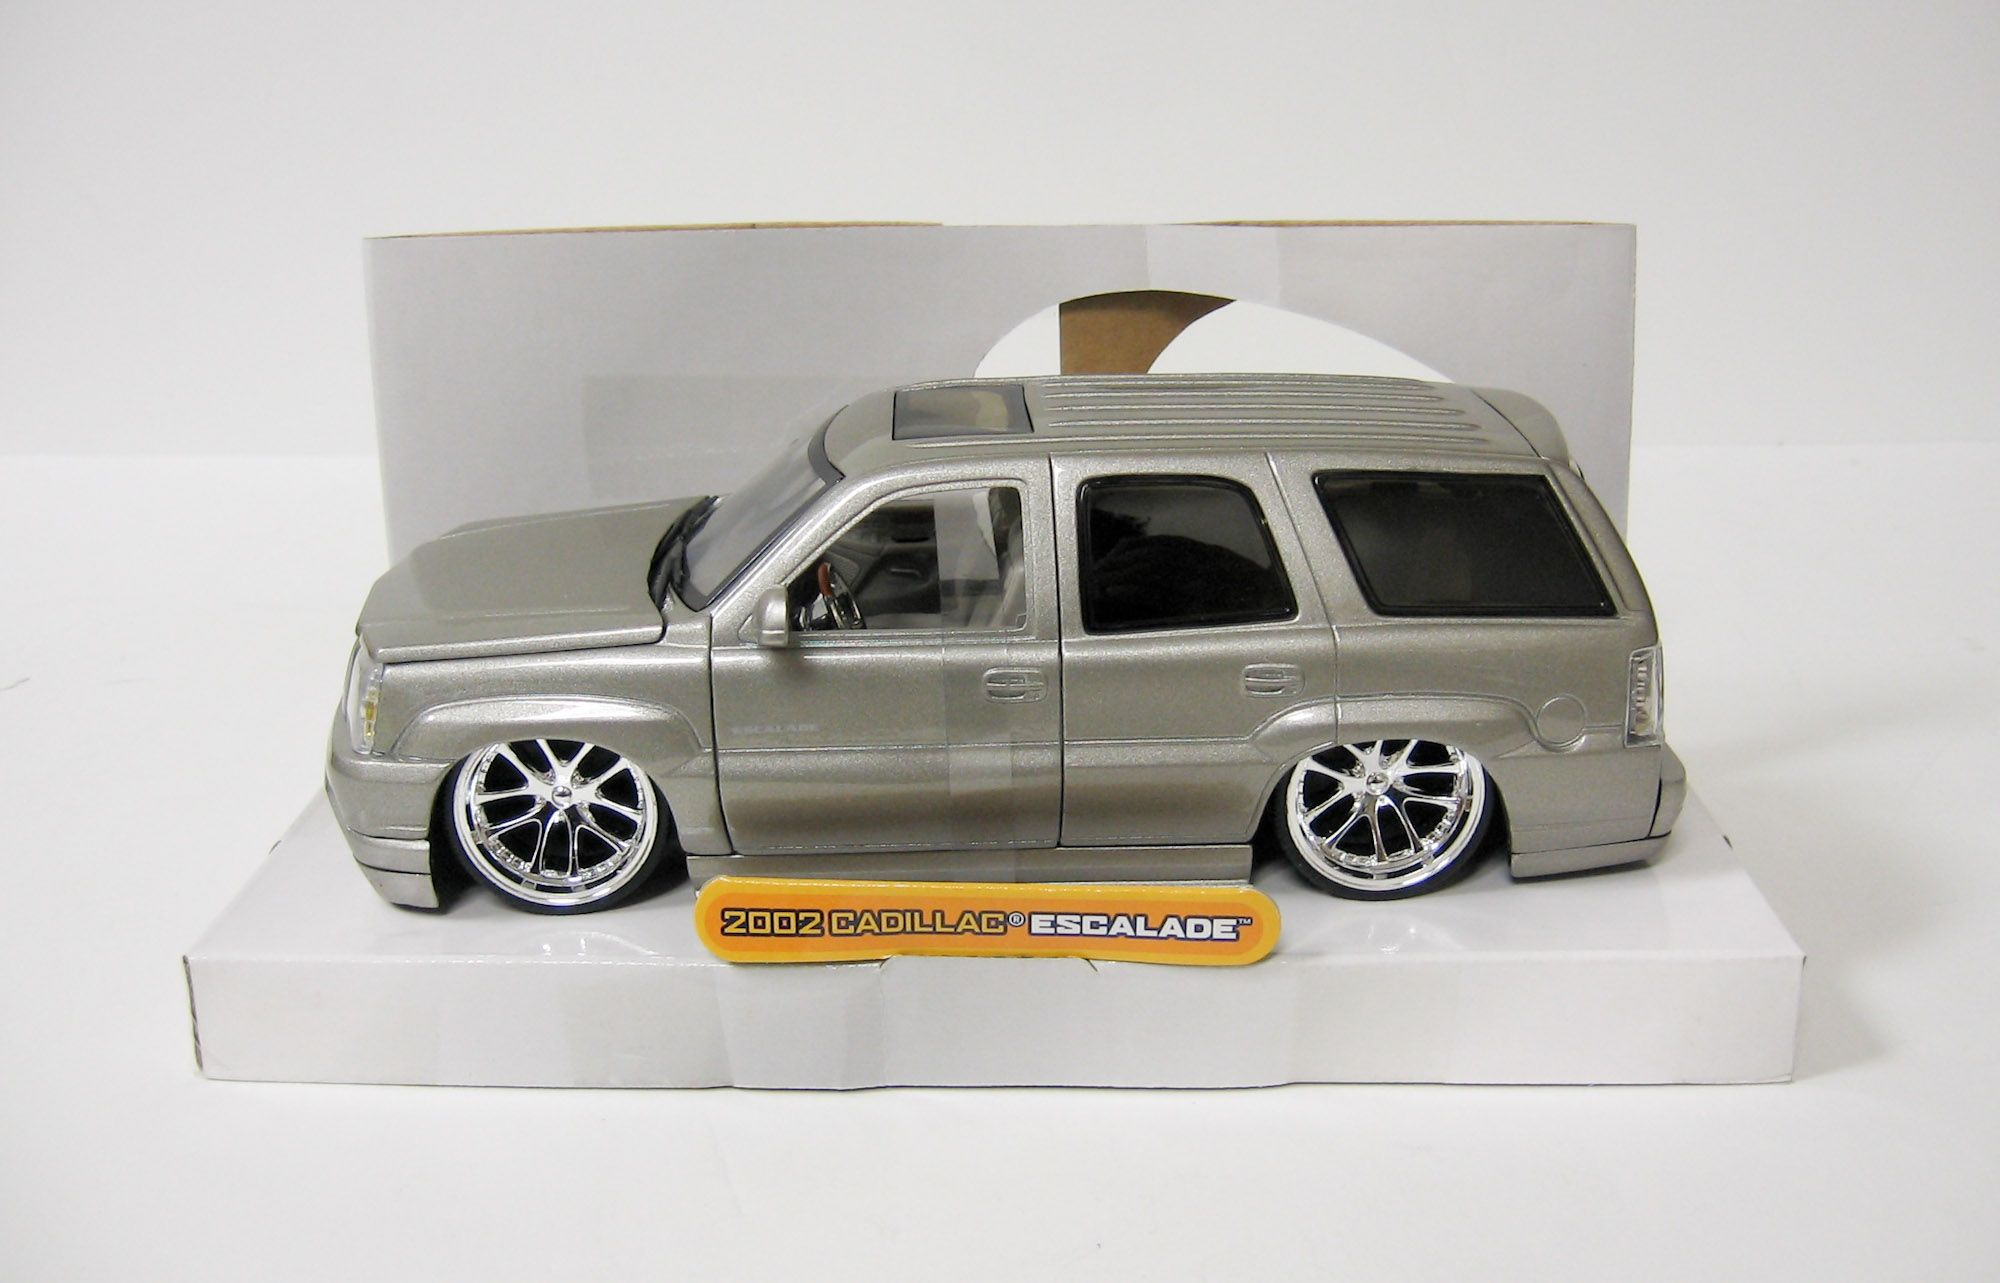 2002 Cadillac Escalade Diecast Model Car Jada Dub City 1 24 Scale